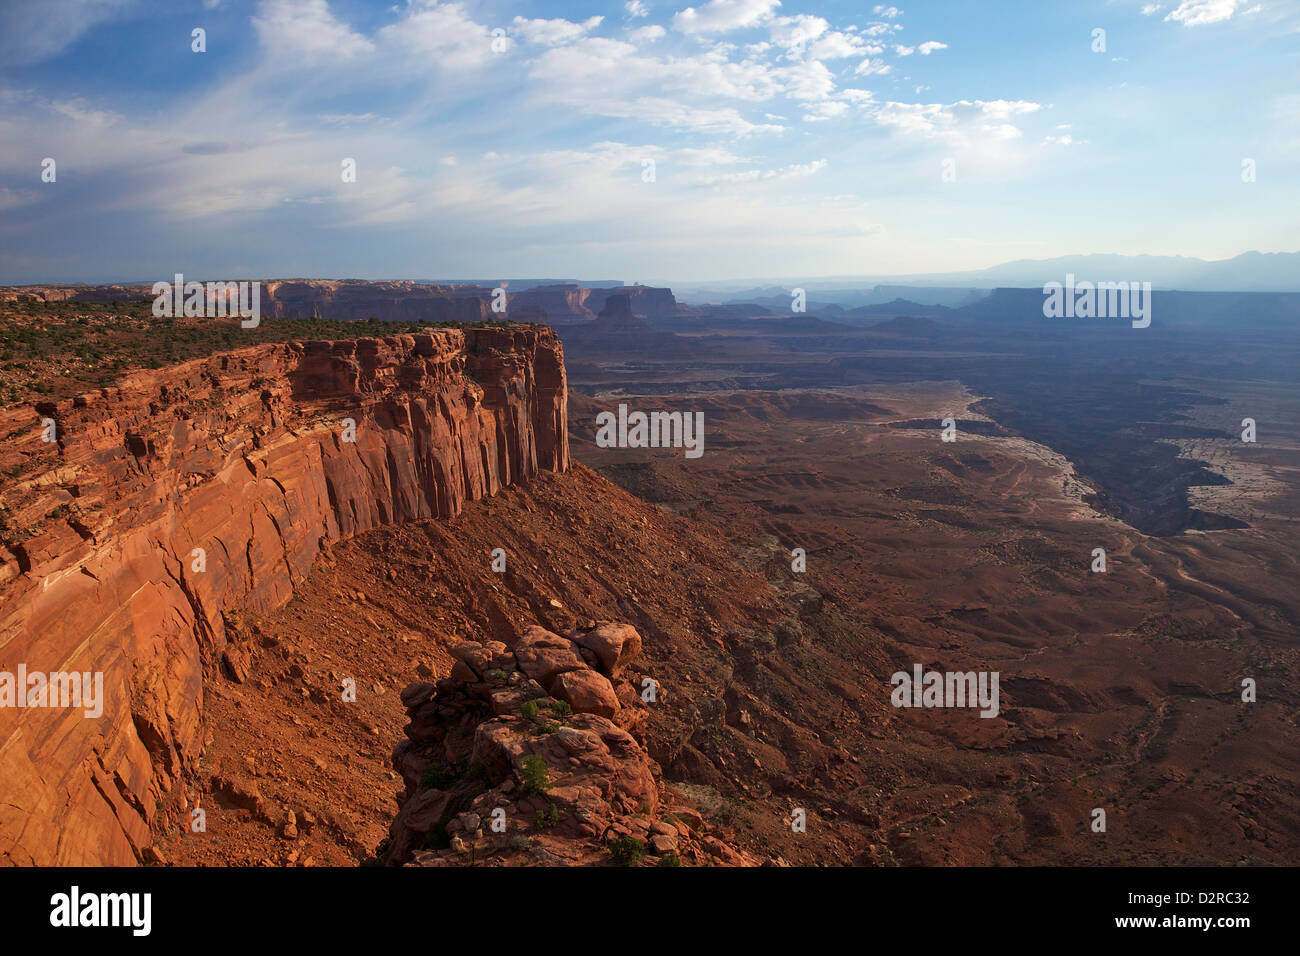 Buck Canyon Viewpoint, Canyonlands National Park, Utah, United States of America, North America Stock Photo